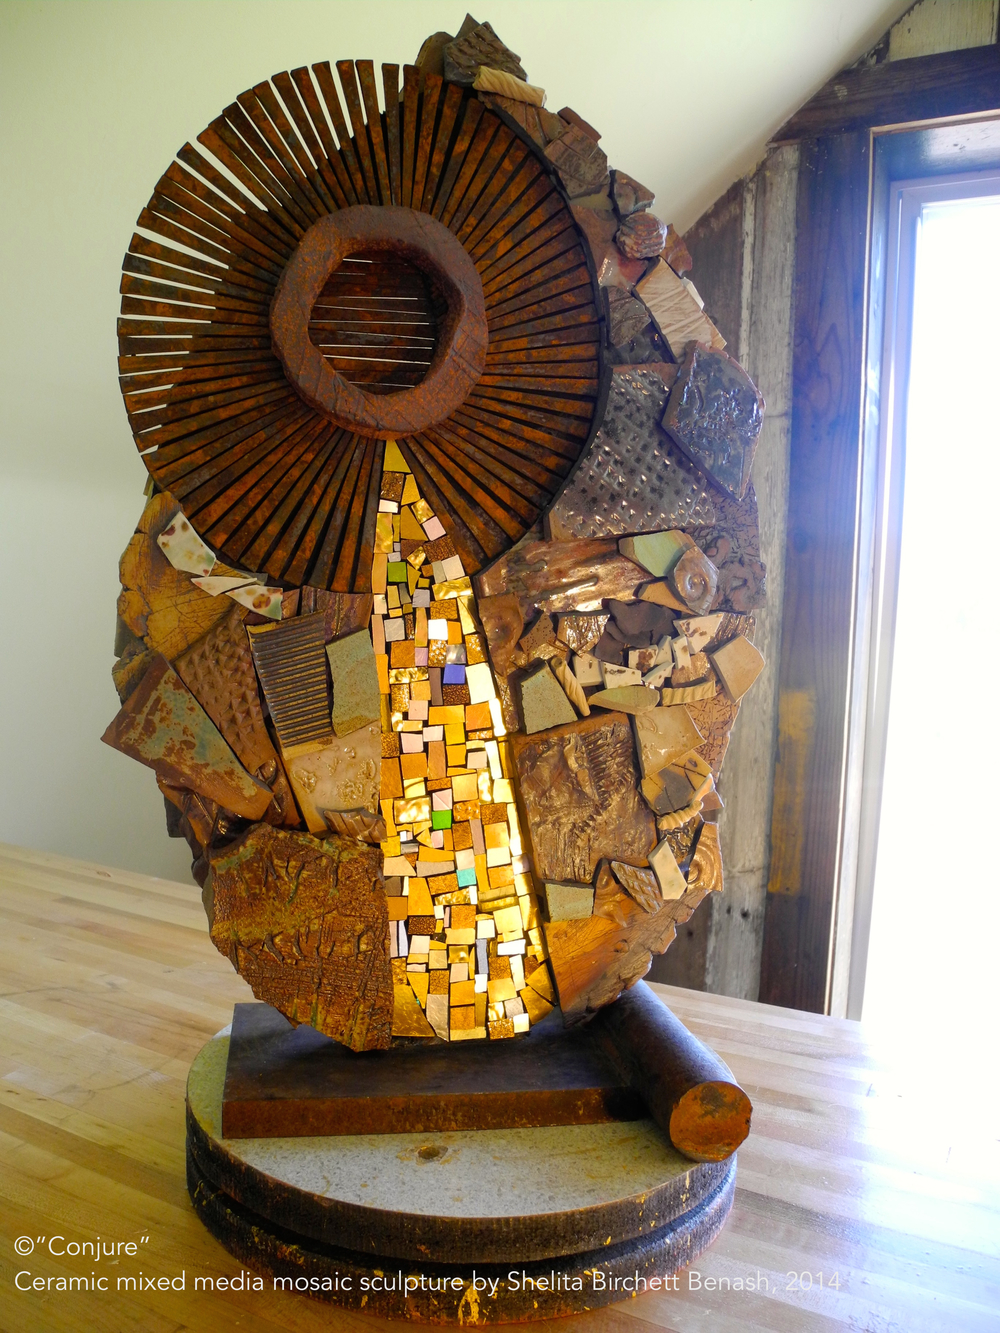 """Conjure"" ceramic mixed media mosaic sculpture by Shelita Birchett Benash, 2014.   22""H X 14""W X 9""D  Side A"